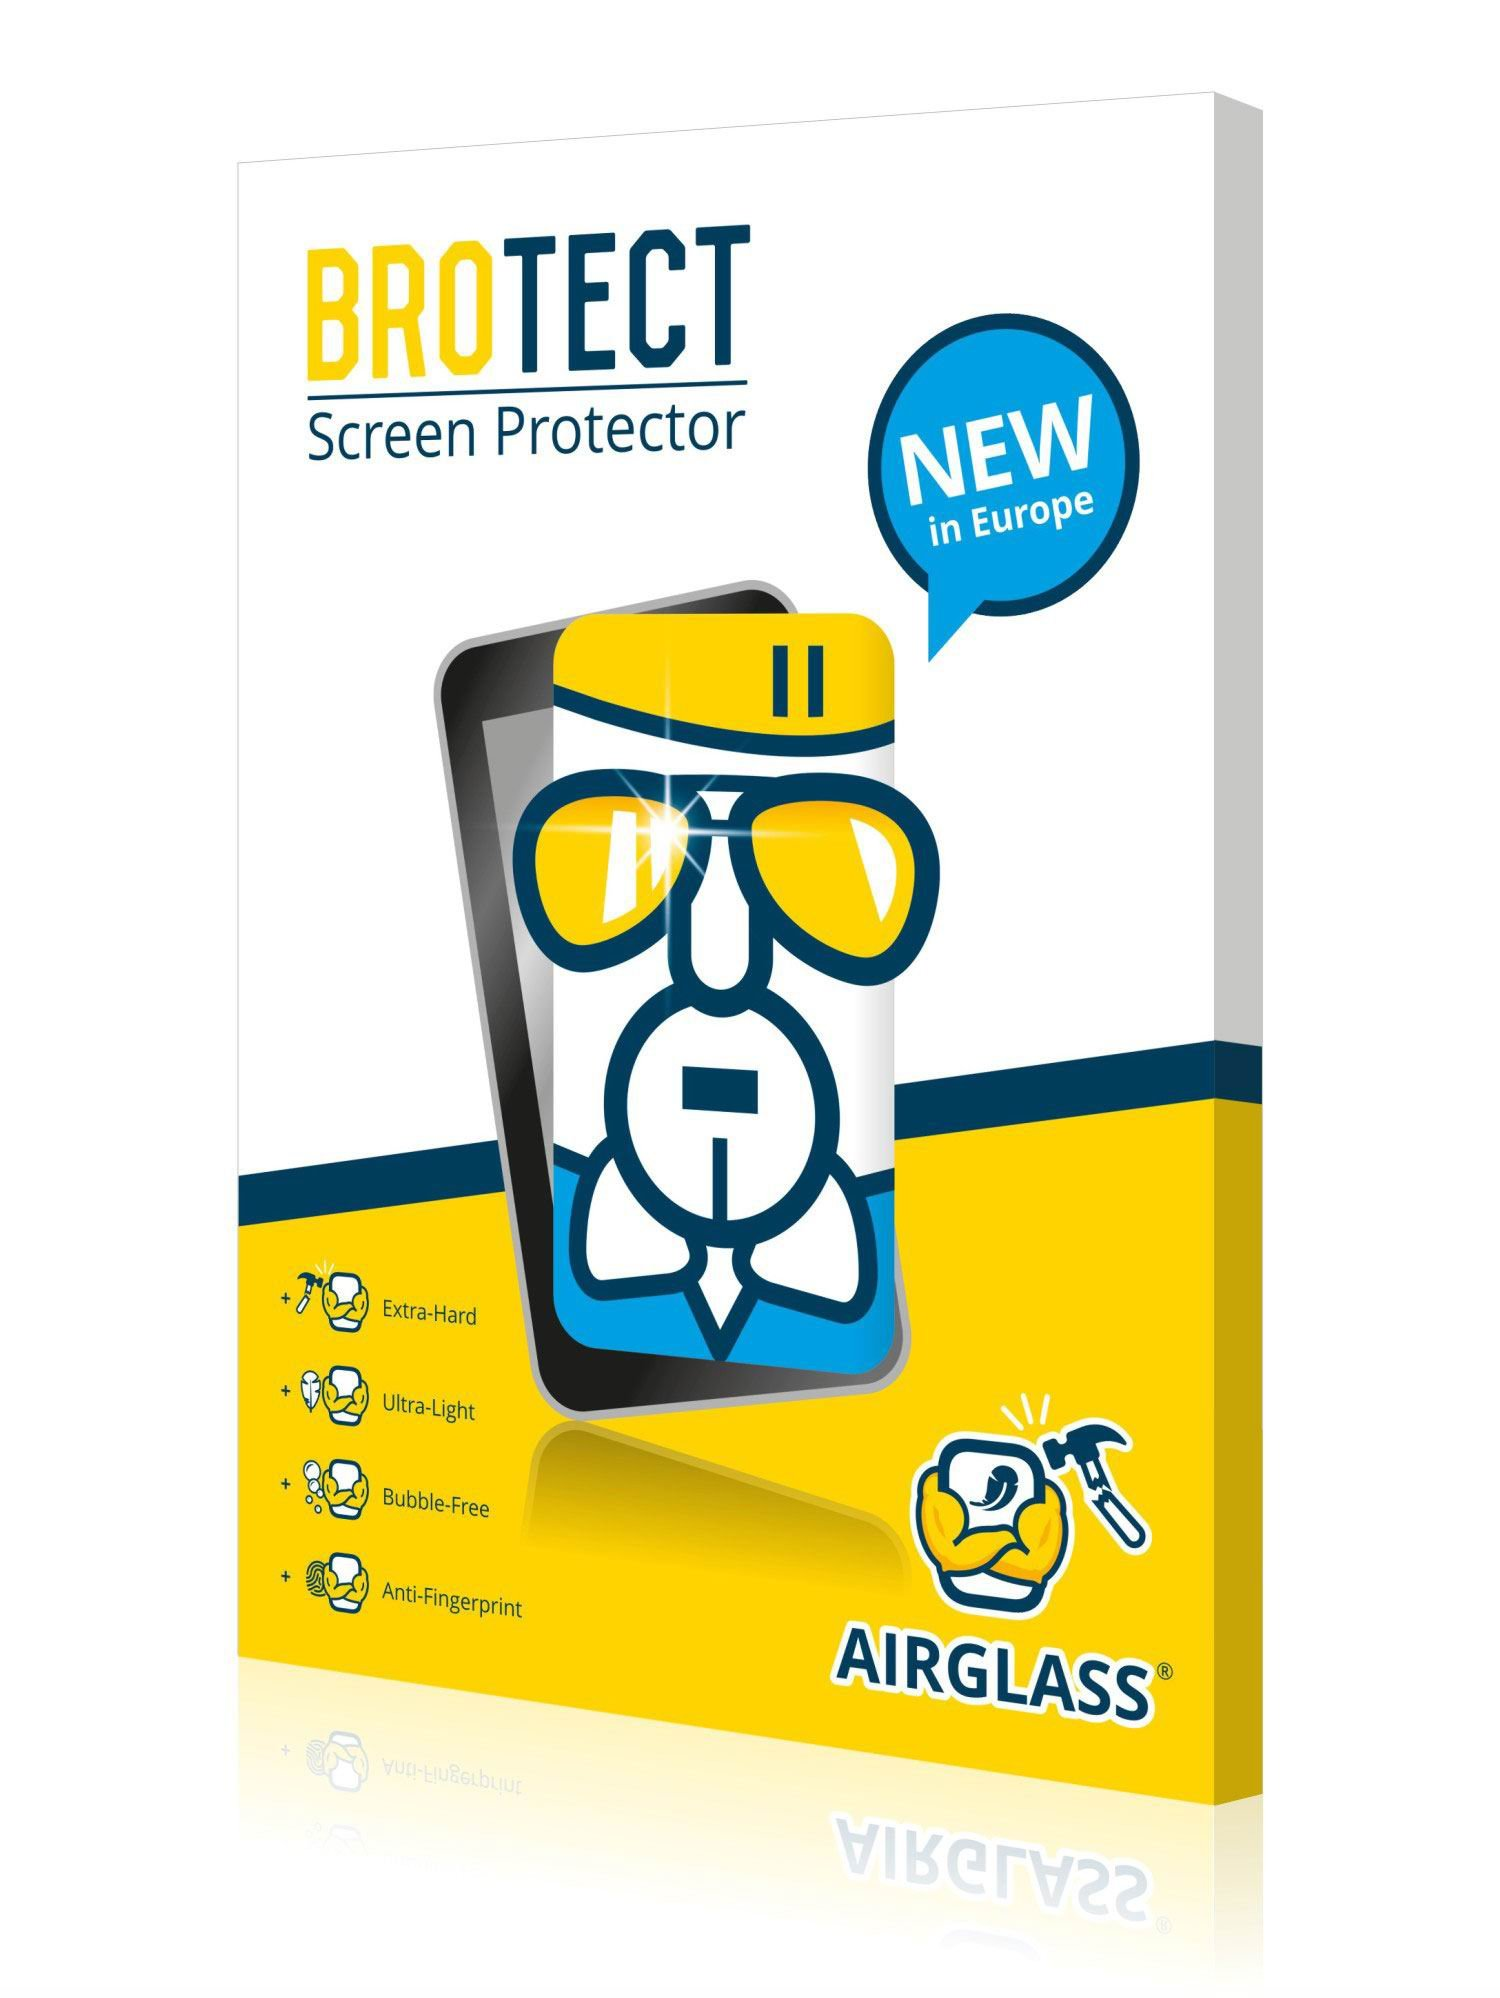 BROTECT AirGlass Glass screen protector for Peugeot Connect Media Navigation NG4 3-D Traveller, Extra-Hard, Ultra-Light, screen guard